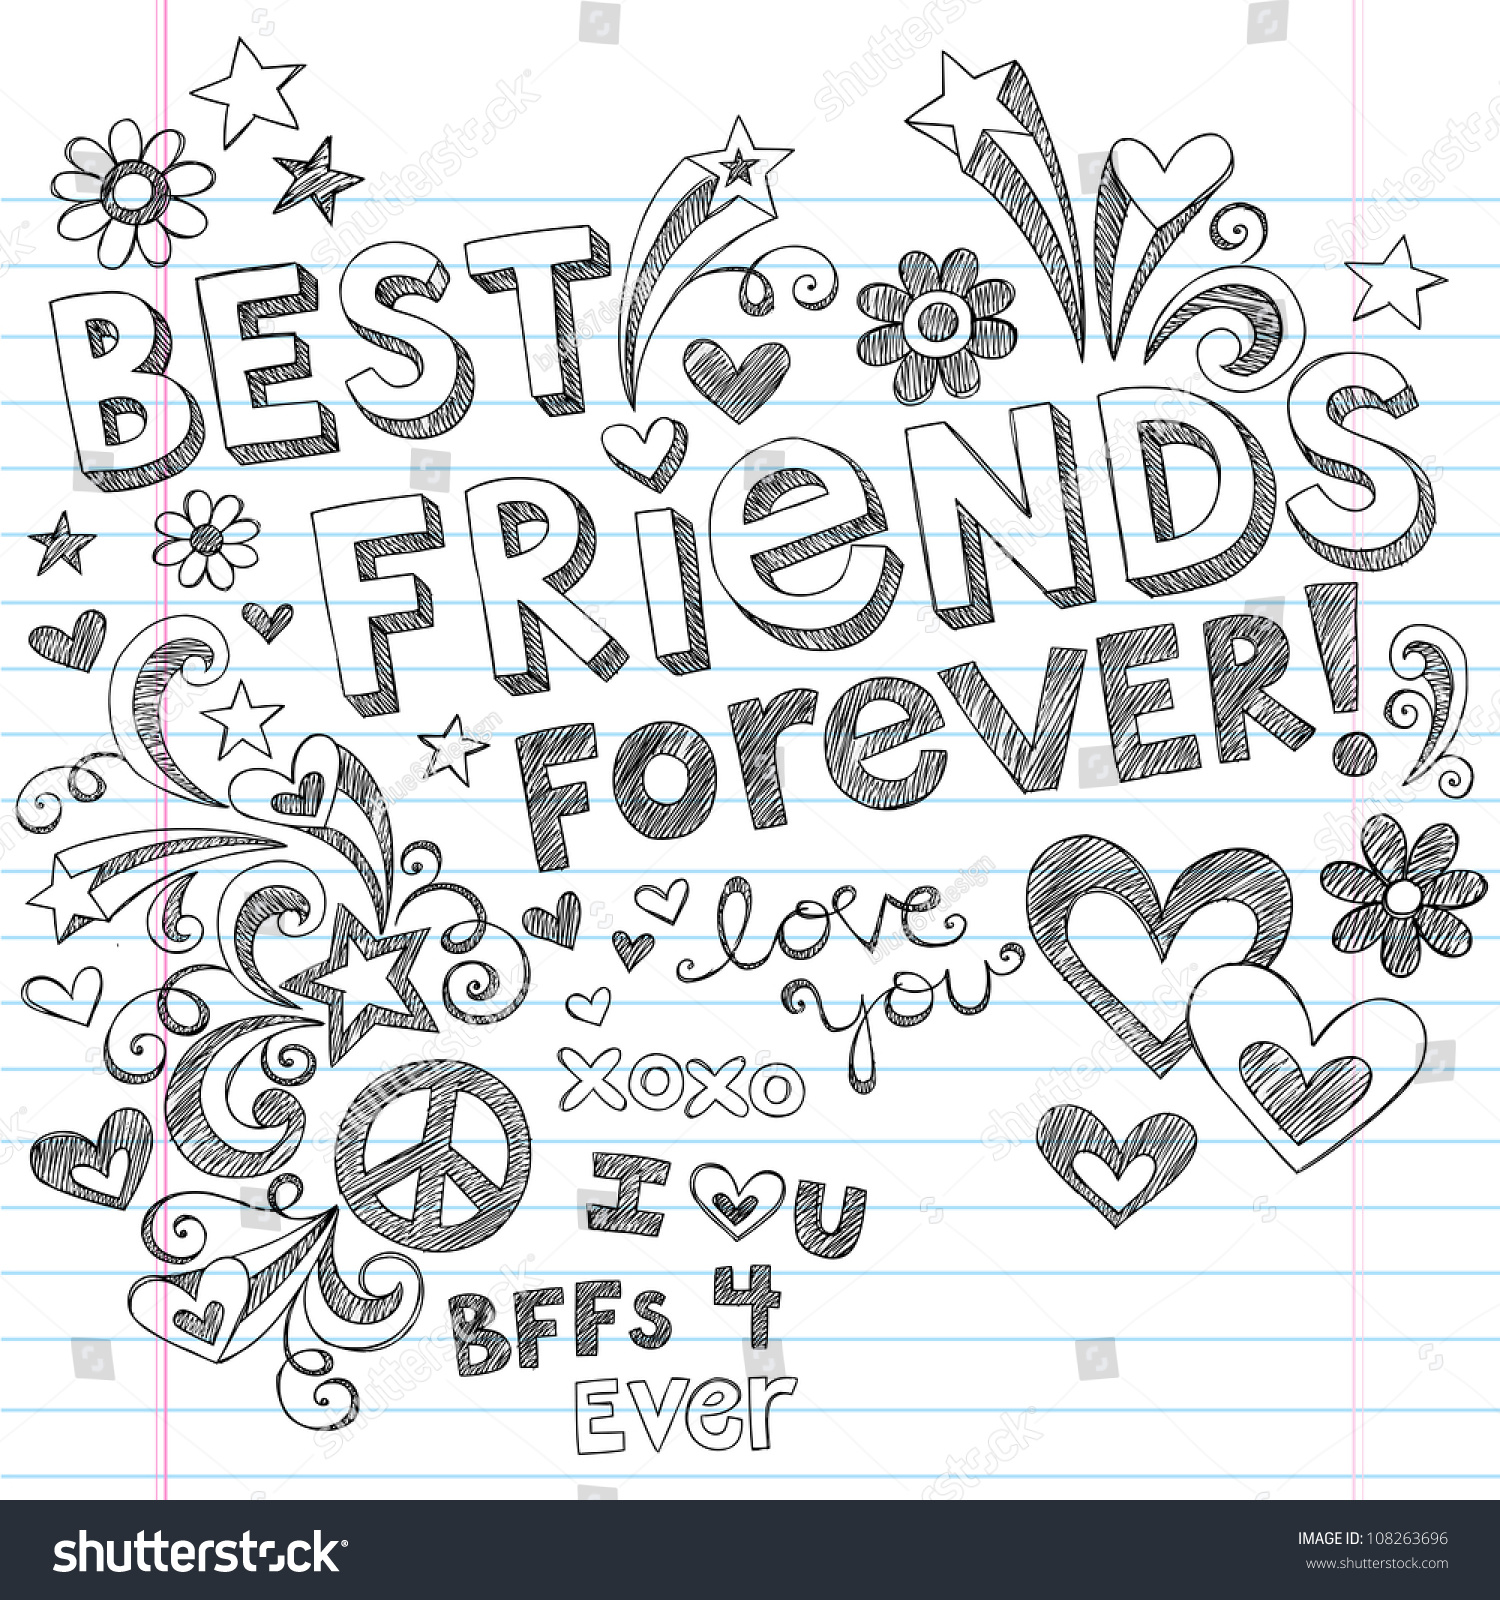 Hand drawn best friends forever love hearts sketchy back to school style notebook doodles design elements on lined sketchbook paper background vector